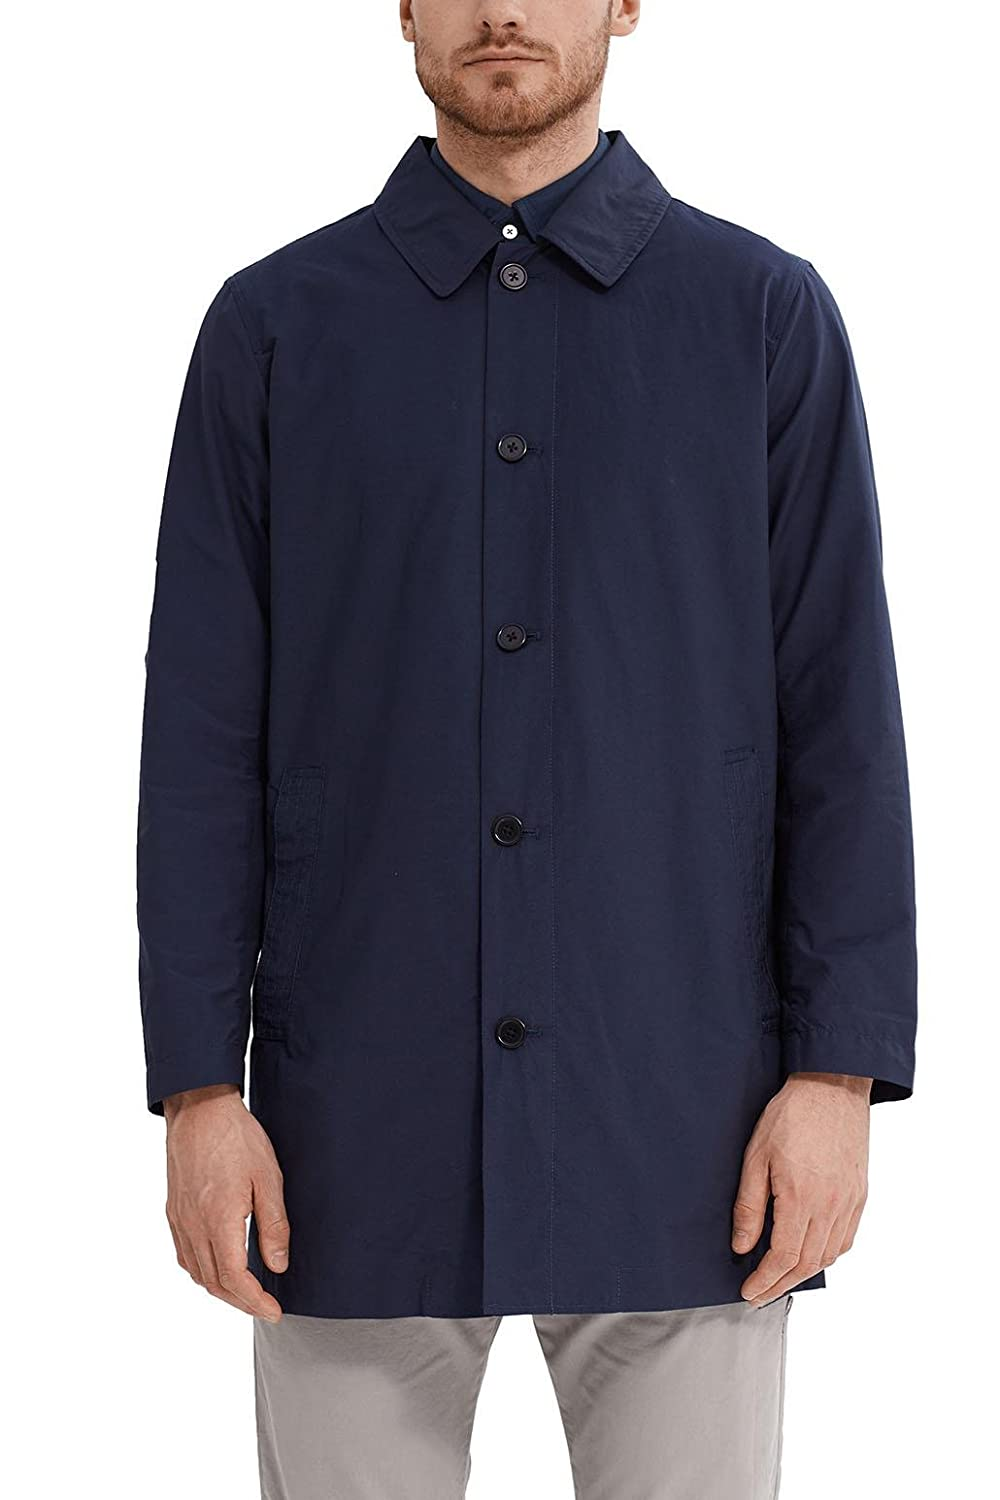 TALLA Large (Talla del fabricante: 50). ESPRIT Collection Abrigo para Hombre